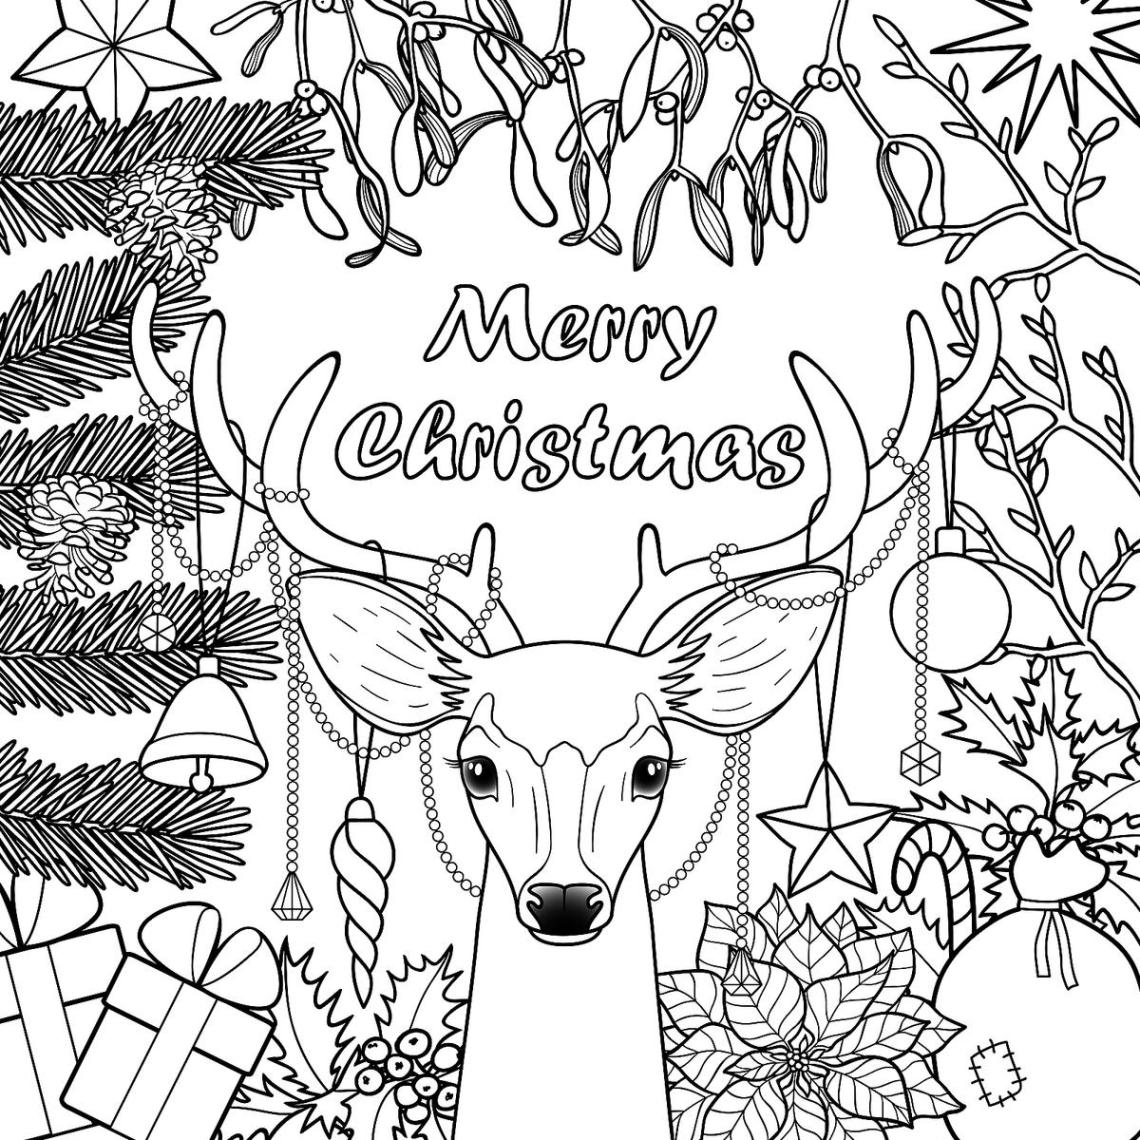 Christmas Coloring Pages for Kids & Adults: 16 Free ...   christmas coloring pages for adults